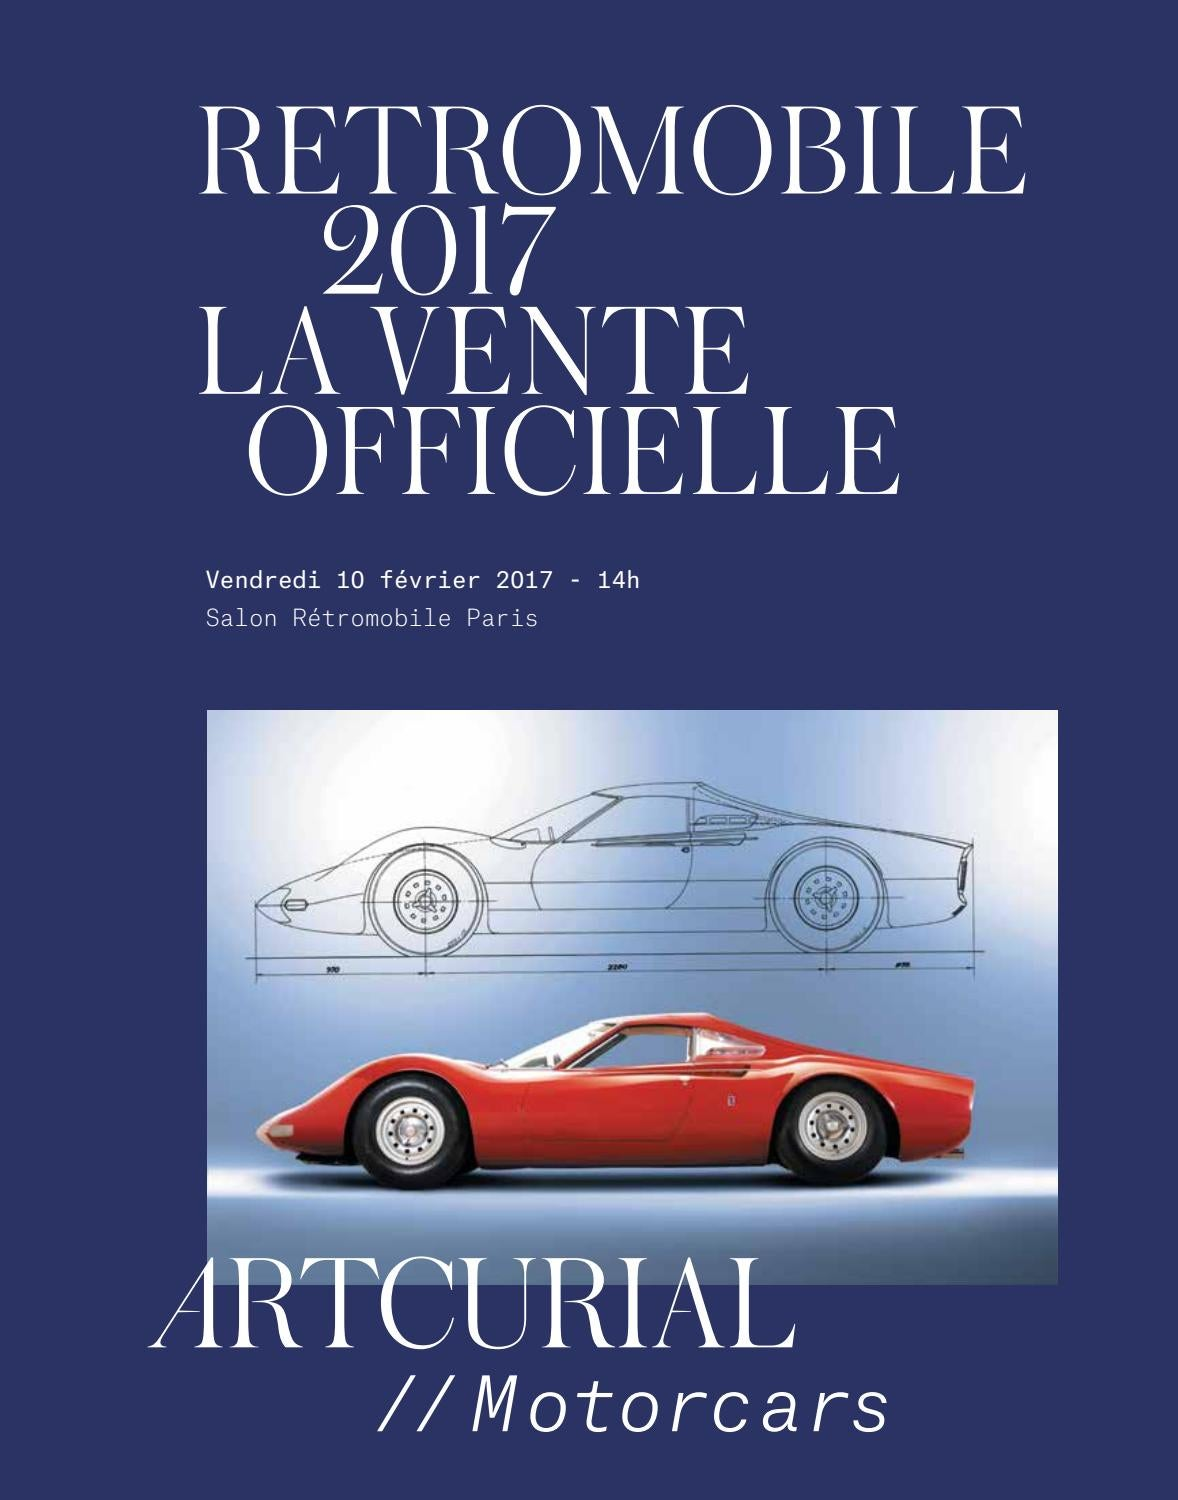 Rétromobile 2017 by Artcurial Motorcars by Artcurial - issuu 7764ac7e24f7